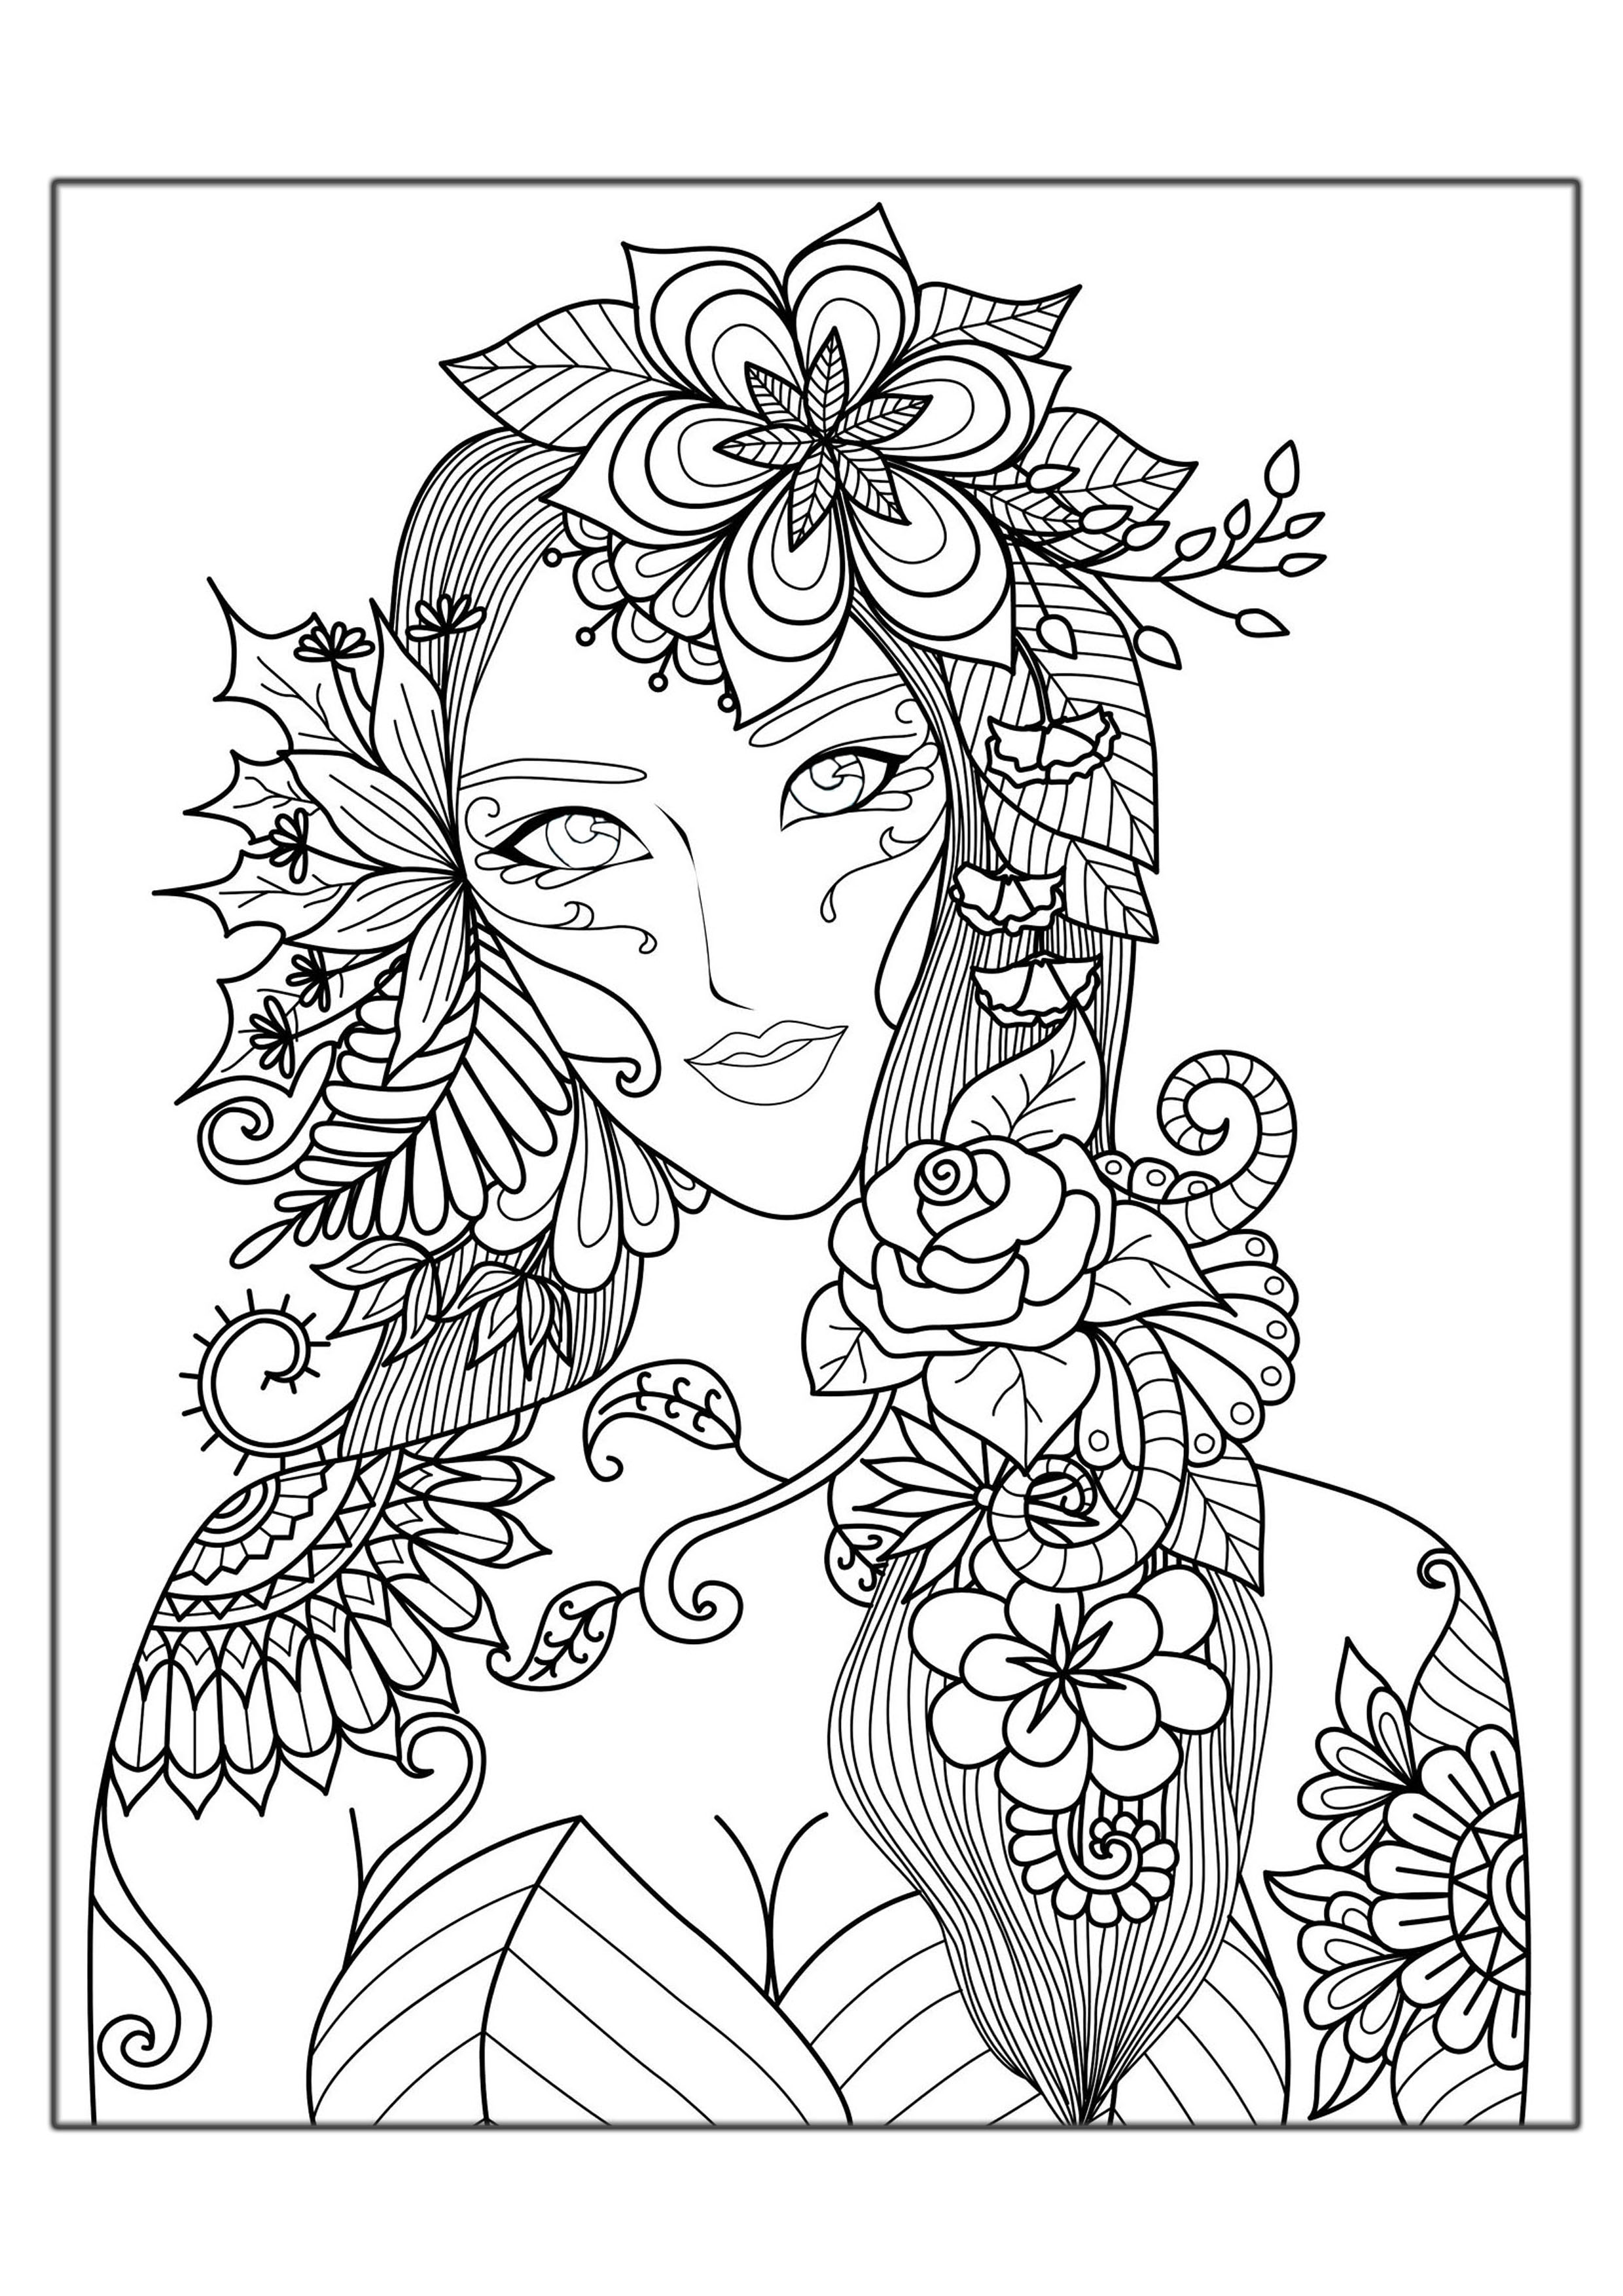 coloring pages printables stitch coloring pages to download and print for free coloring printables pages